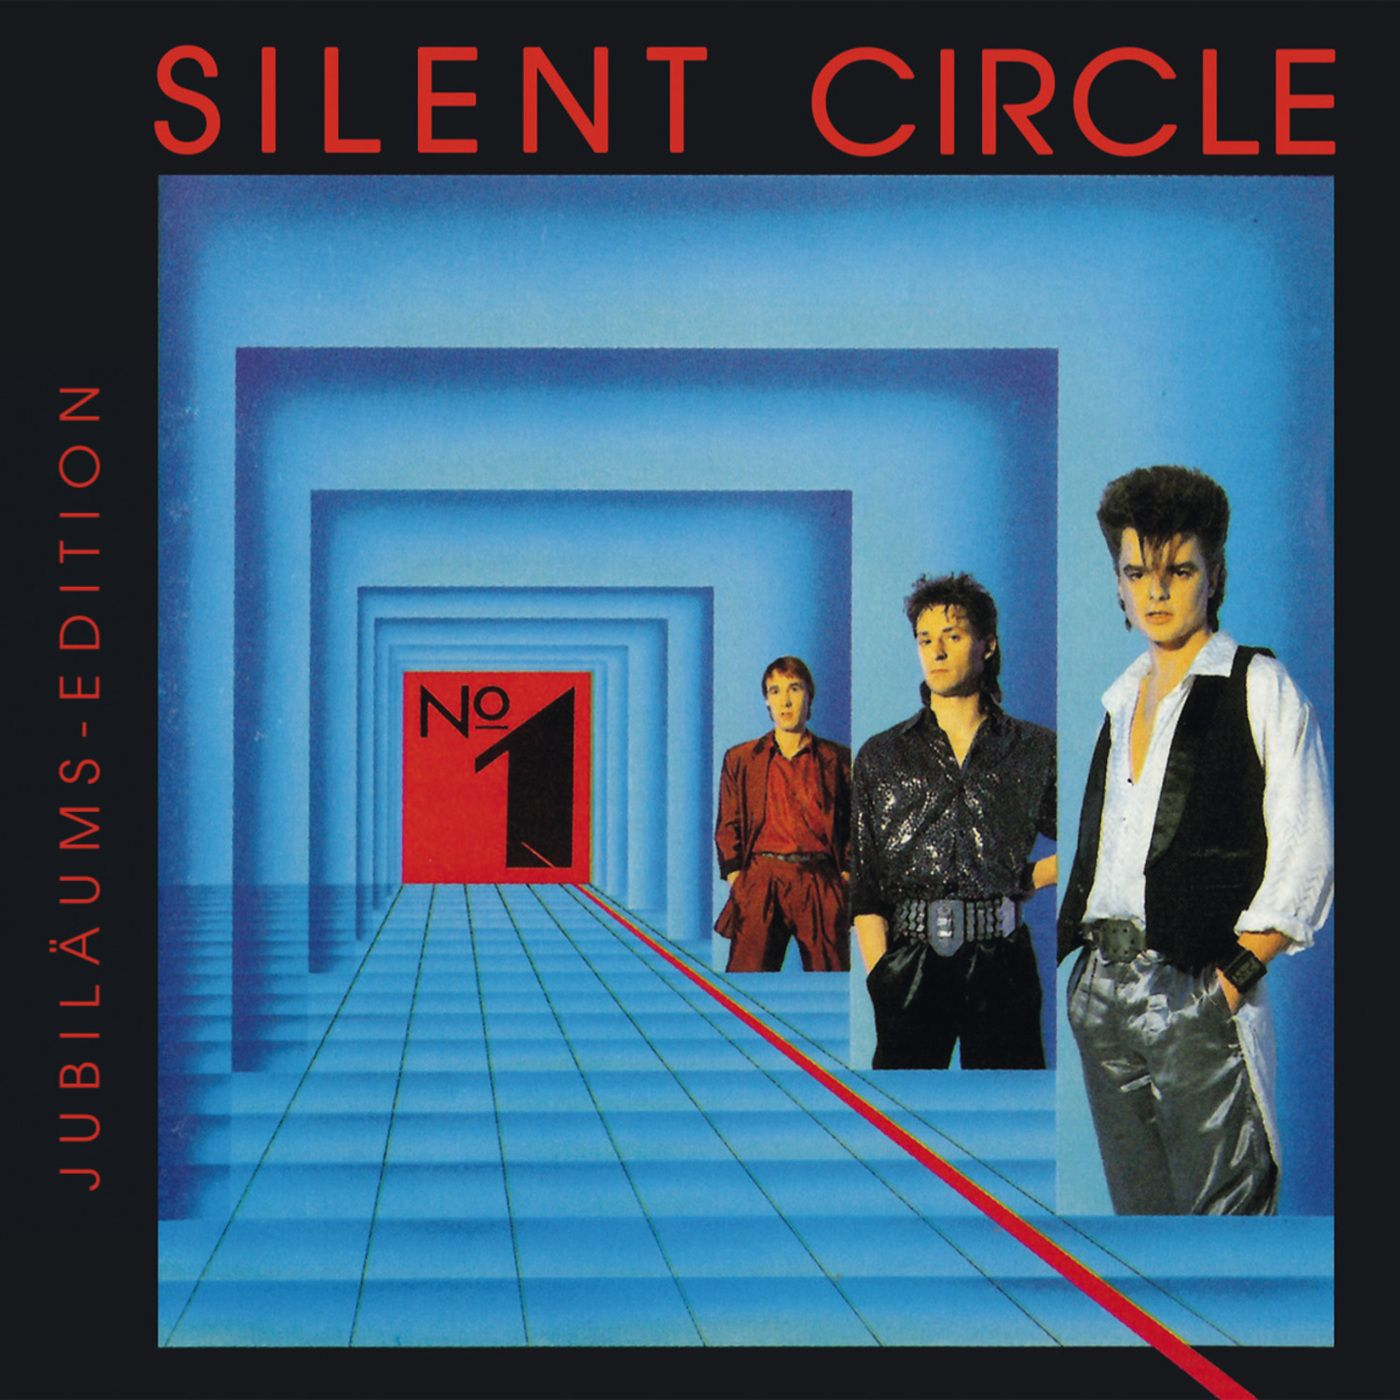 Pin by Bence Czufor on 0000000002 (With images) 80s songs